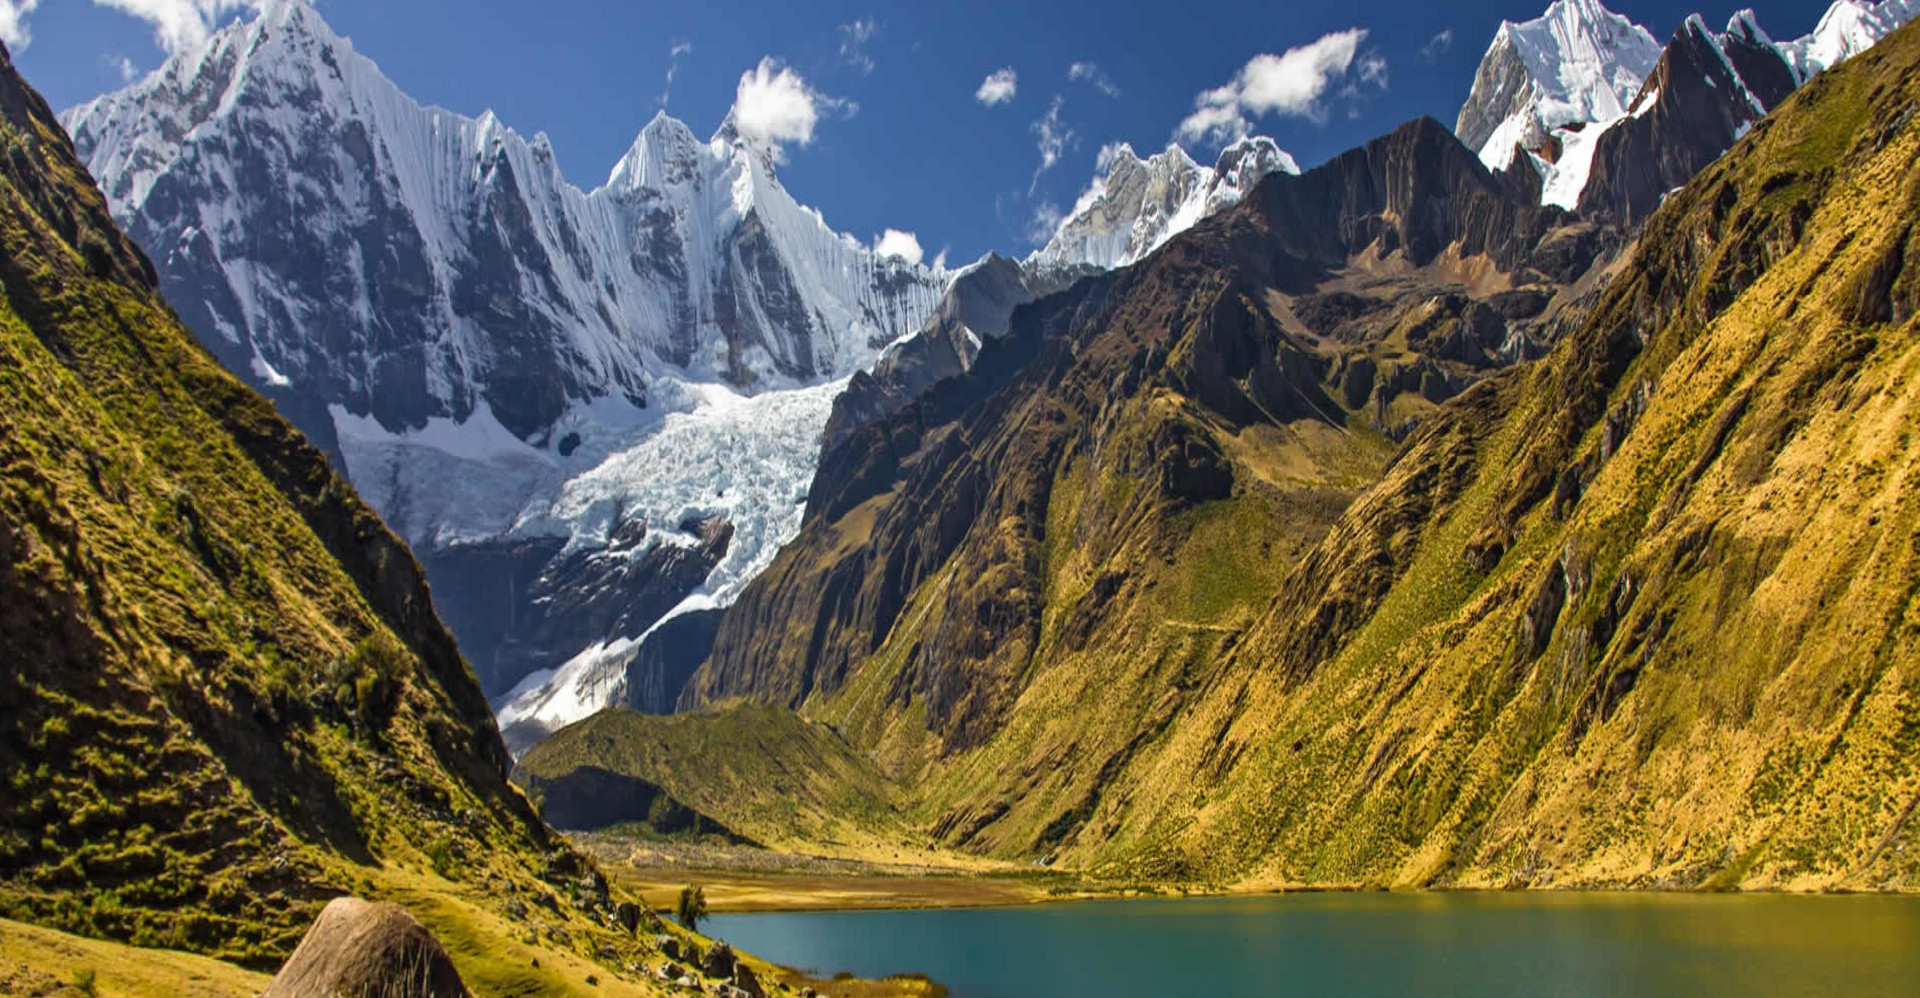 Discover the Peruvian Andes